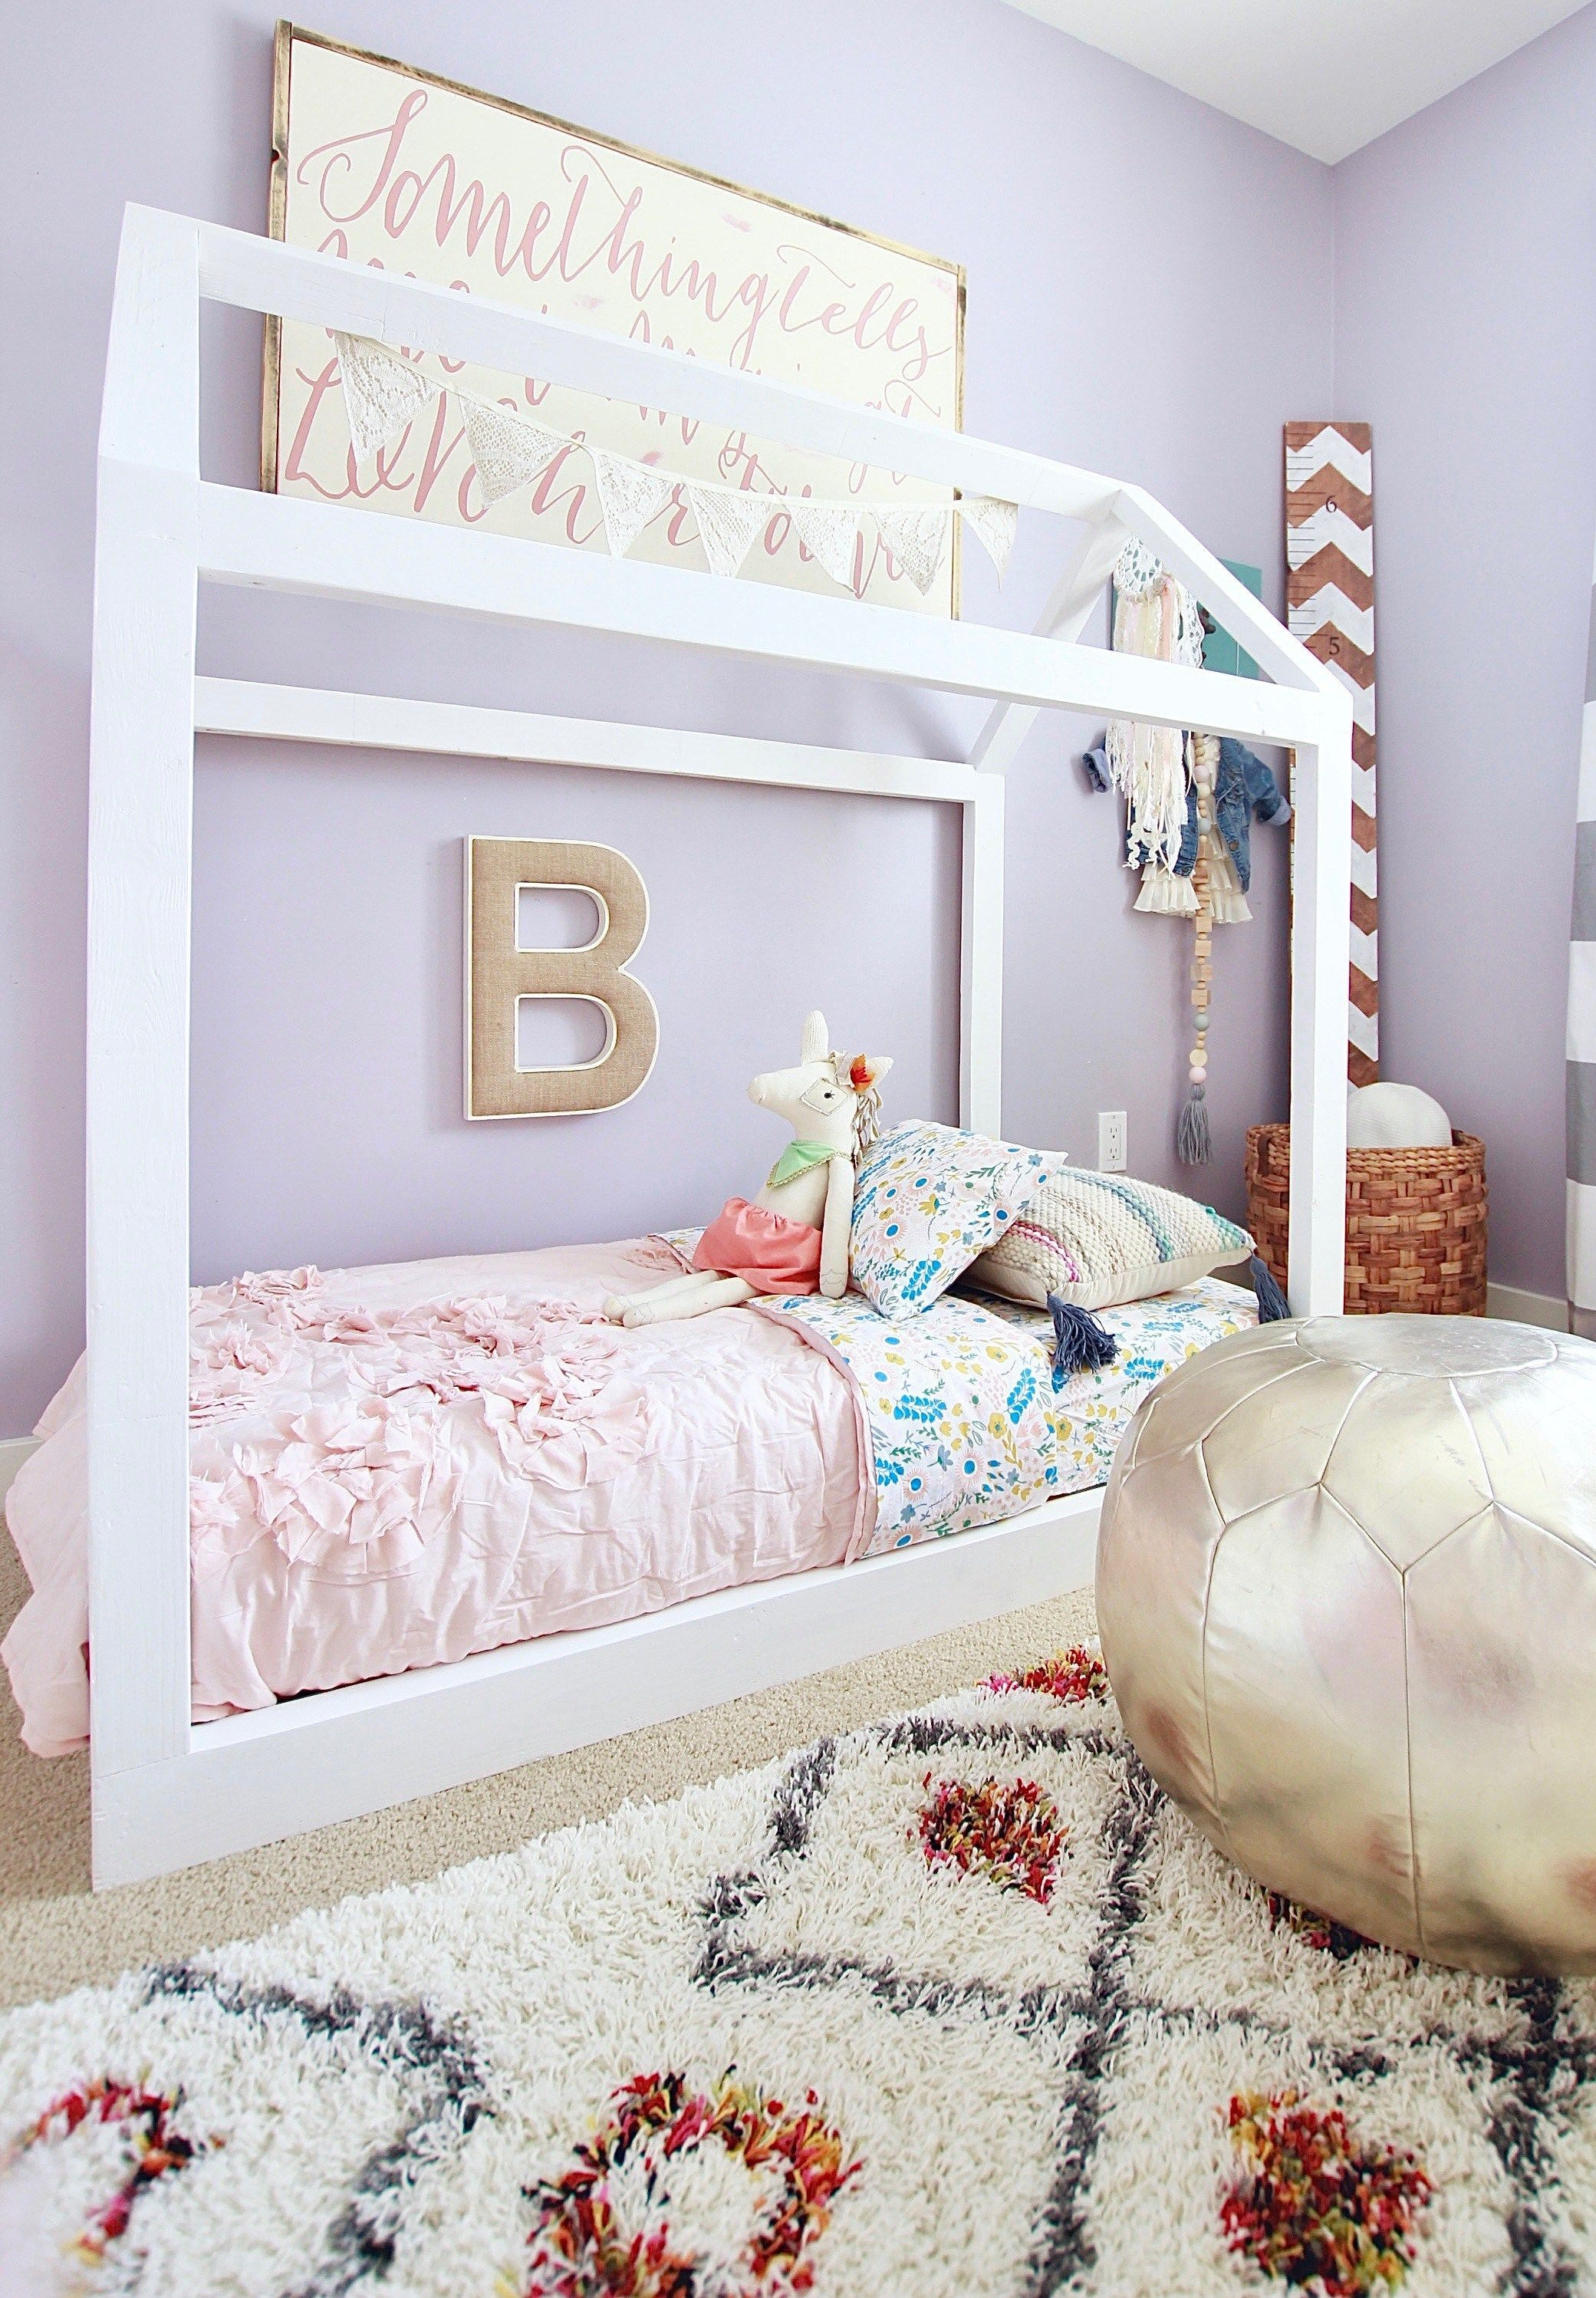 Lit Bas Enfant Beau Our Super Easy Diy toddler House Bed This Bed took Under 2 Hours